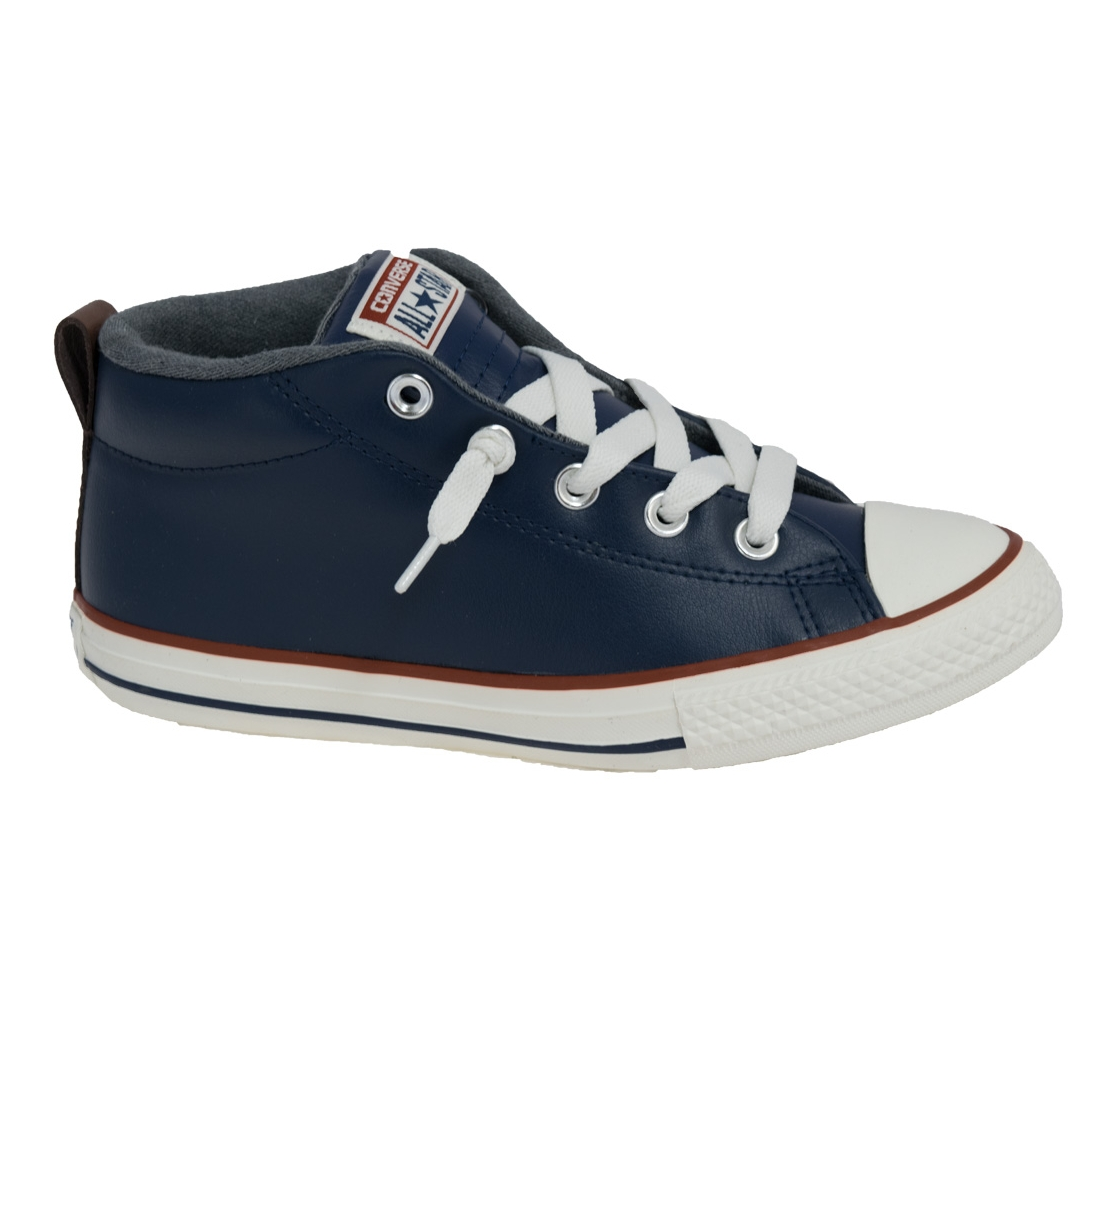 Converse Παιδικό Παπούτσι Μόδας Chuck Taylor All Star Street M 658103C